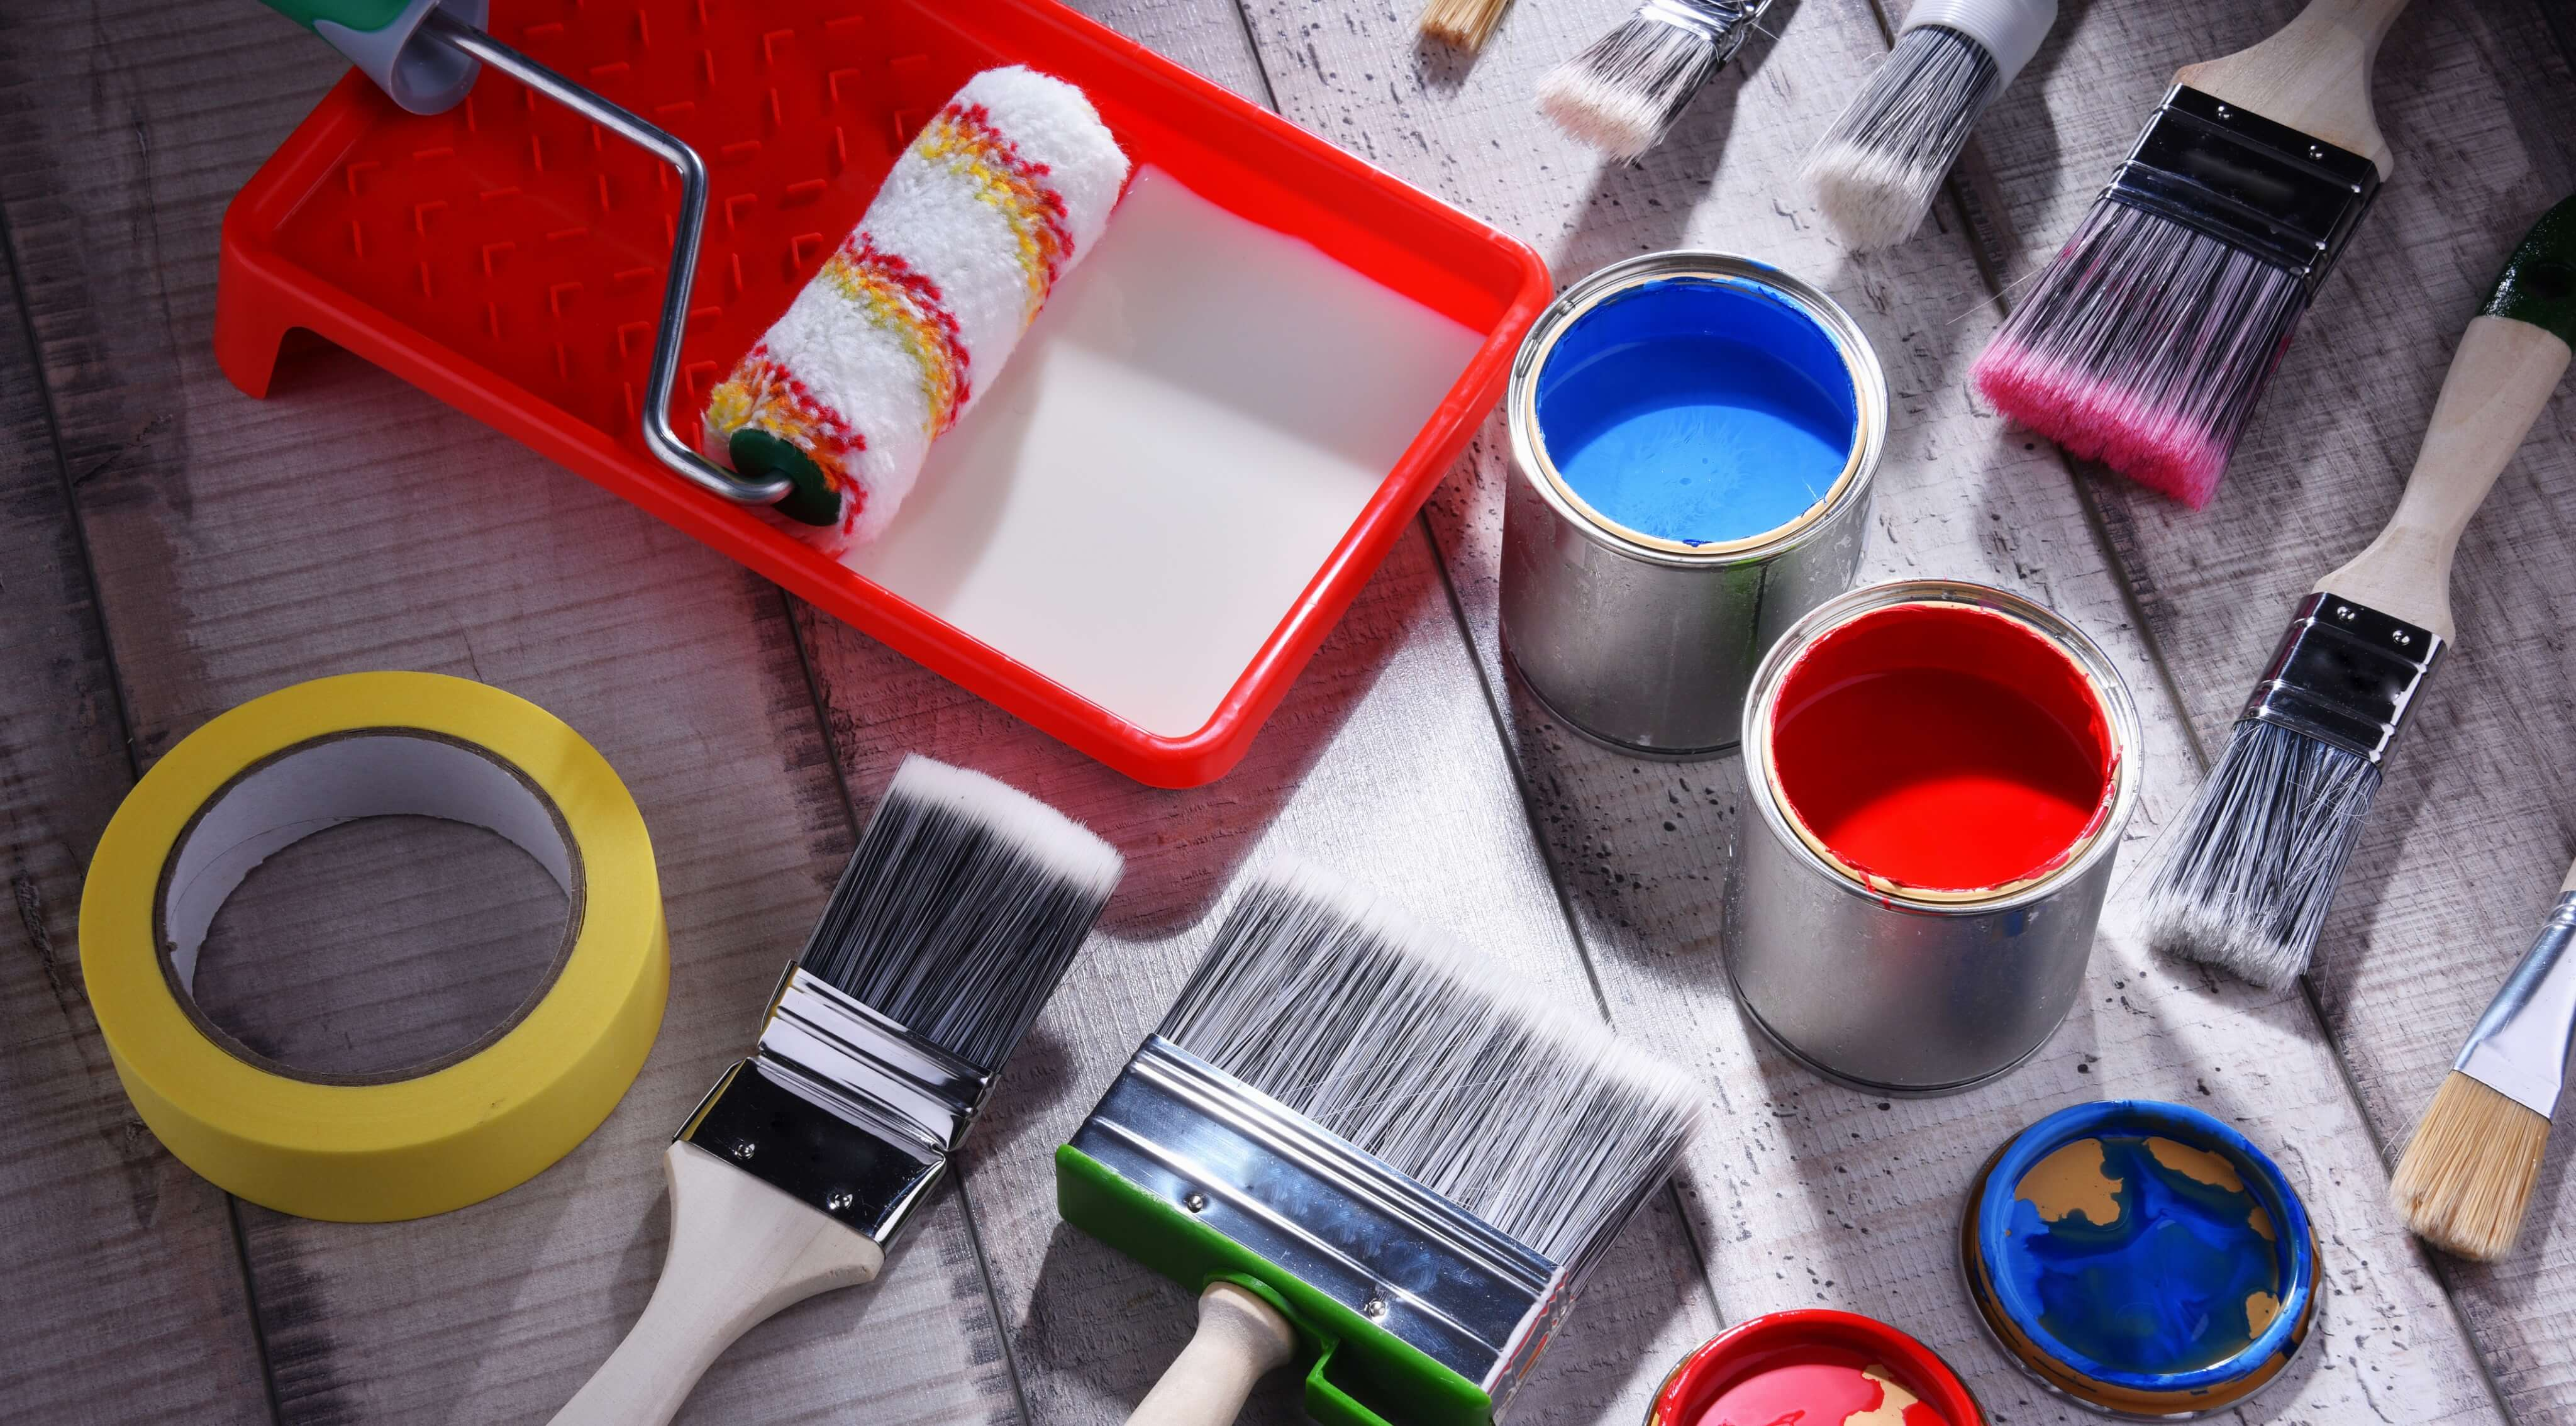 How to Decide on Paint Finish